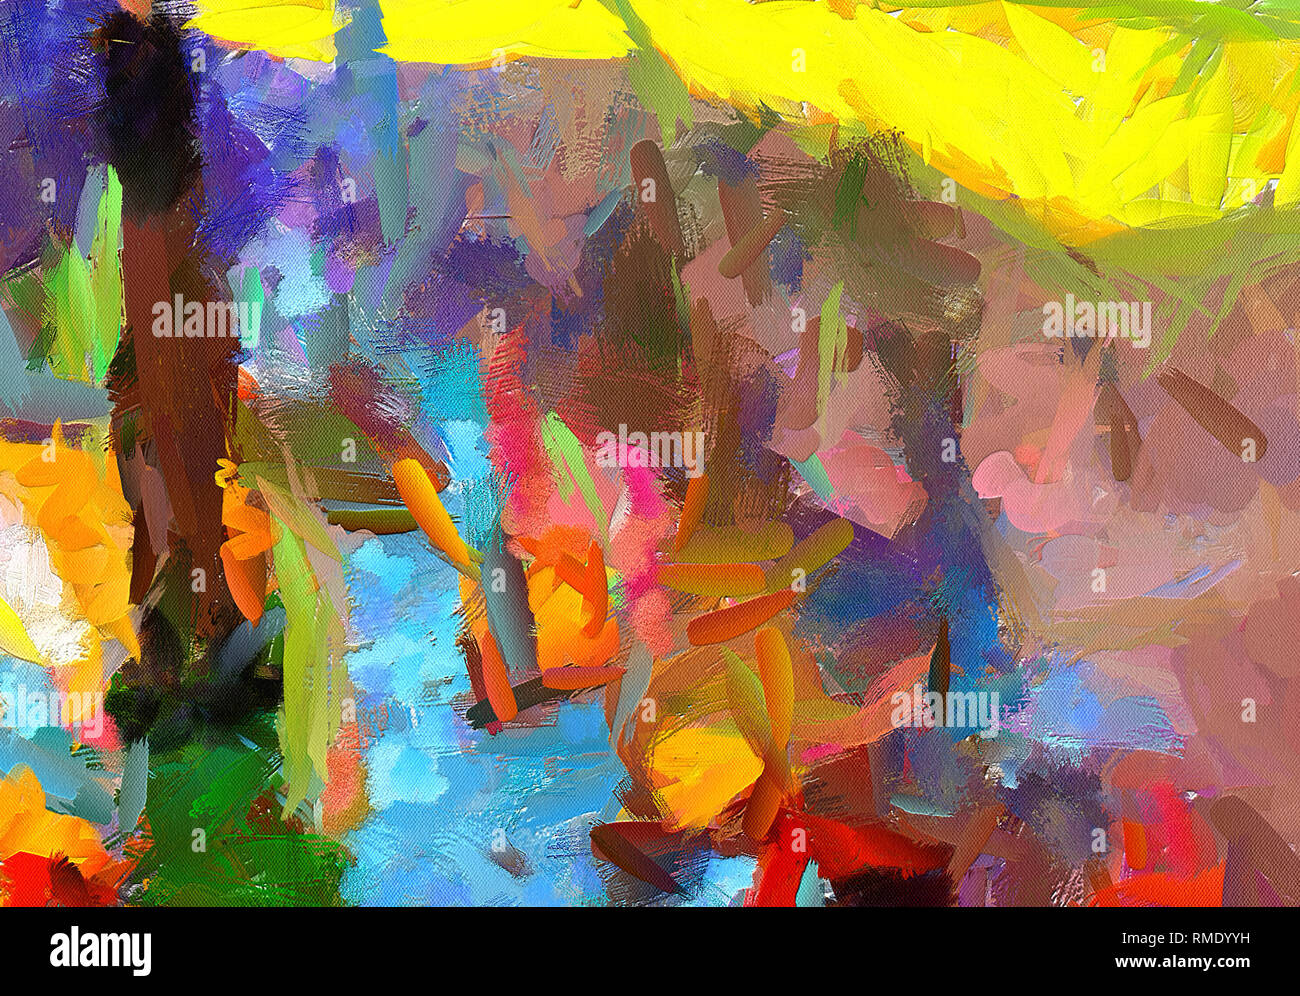 Wall Poster Print Template Abstract Painting Art Hand